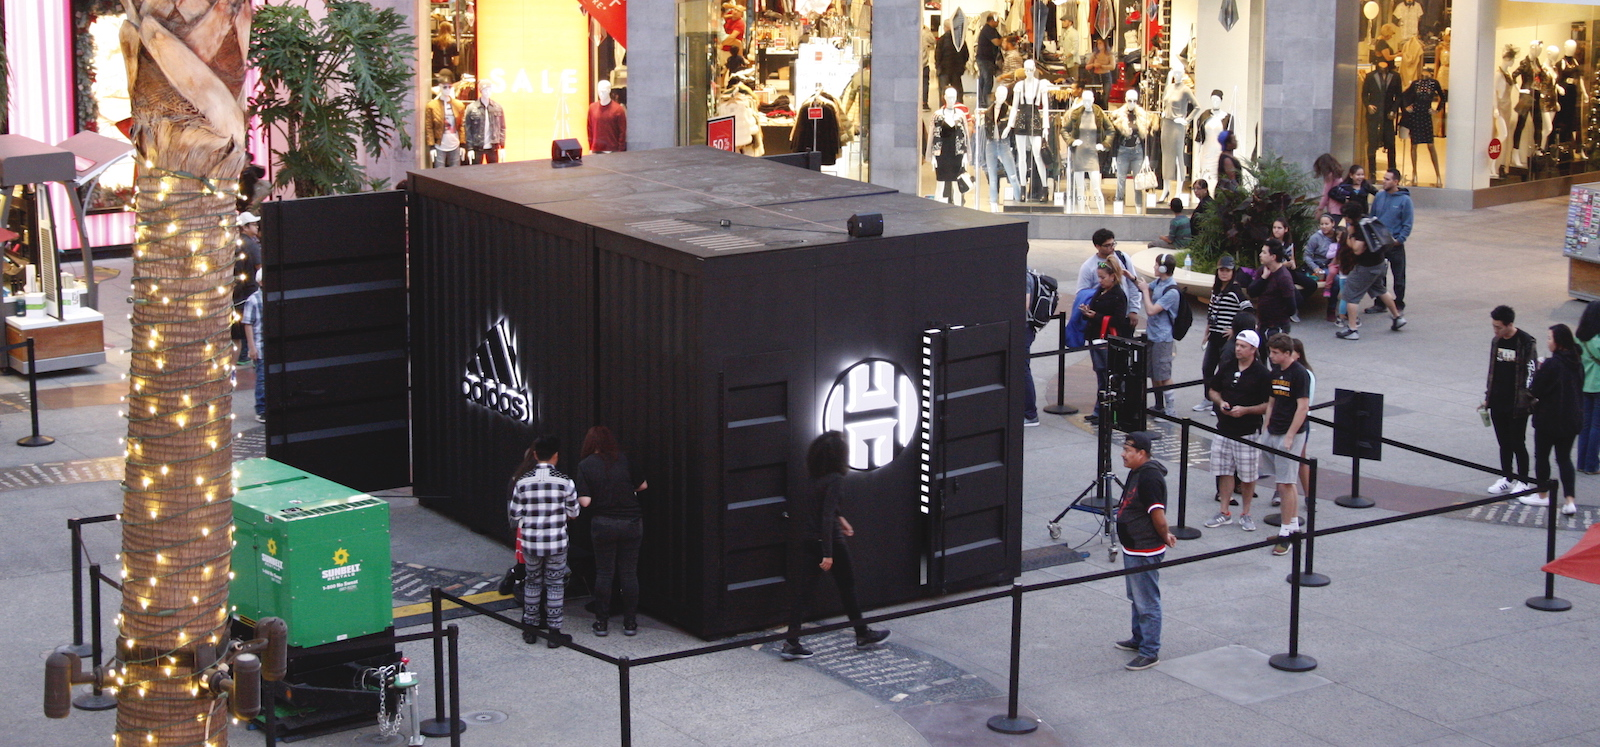 An aerial view of the activation pod which is a large black shipping container with large lit adidas and Harden logos, and a door cracked open to reveal a black and white striped glowing interior.